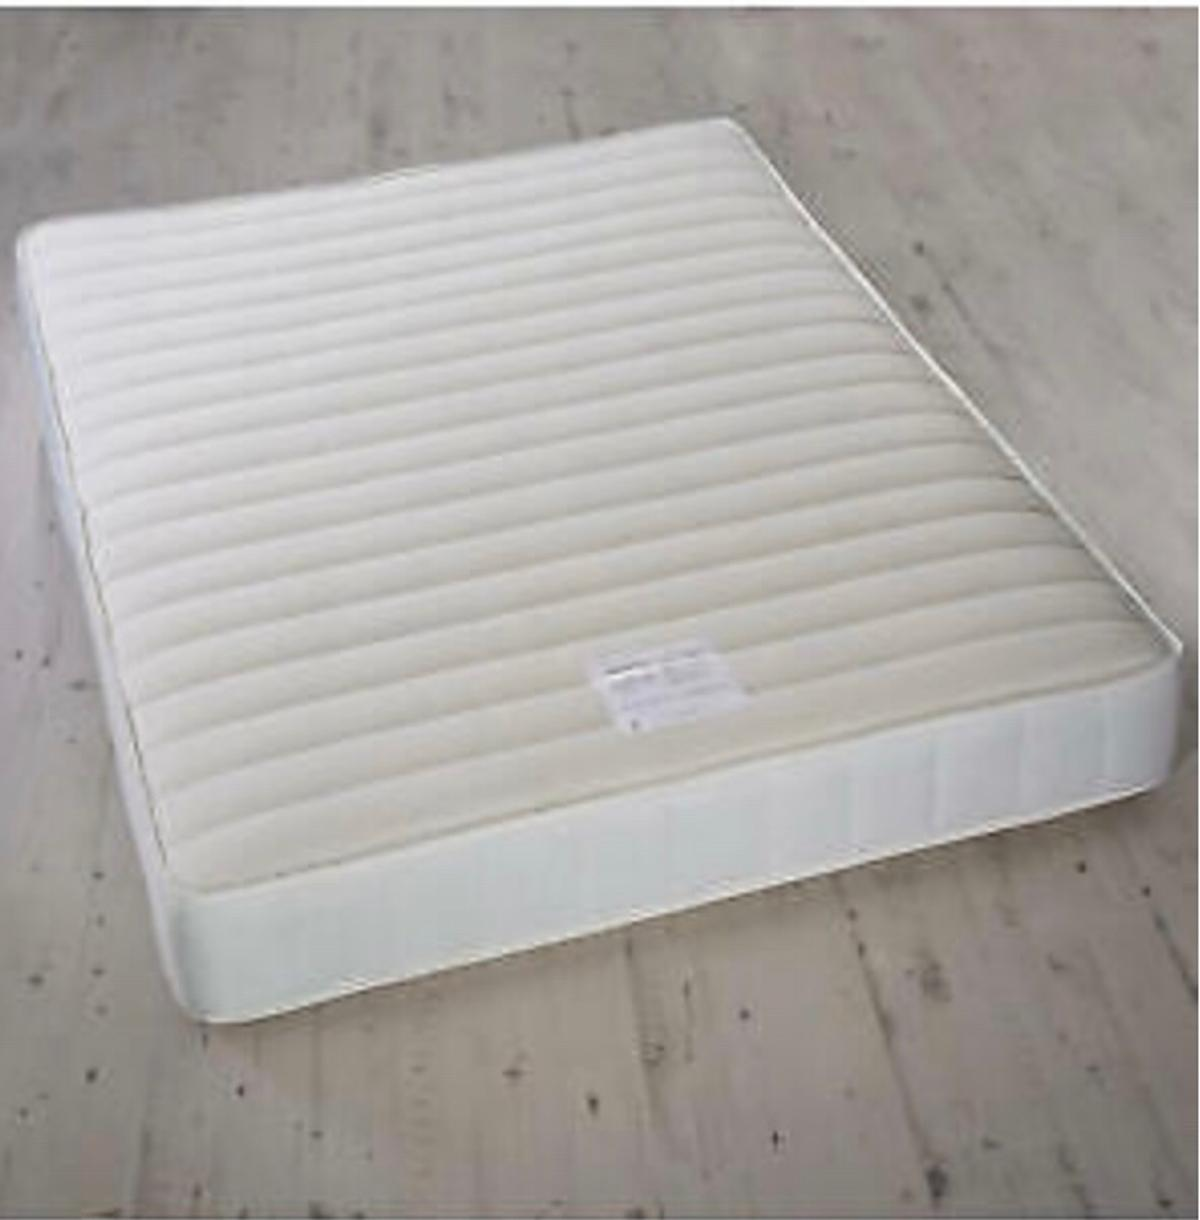 the latest 1e304 2dee0 John Lewis double collection 1000 mattress